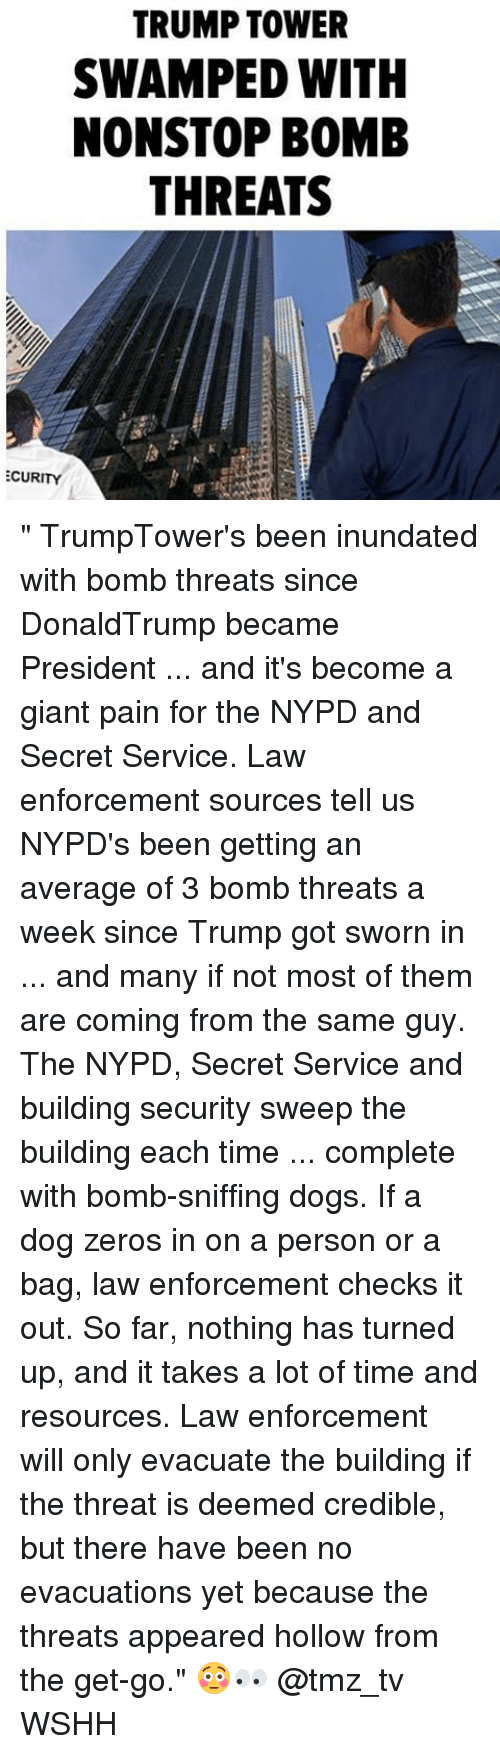 "Dogs, Memes, and Wshh: TRUMP TOWER  SWAMPED WITH  NONSTOP BOMB  THREATS  ECURITY "" TrumpTower's been inundated with bomb threats since DonaldTrump became President ... and it's become a giant pain for the NYPD and Secret Service. Law enforcement sources tell us NYPD's been getting an average of 3 bomb threats a week since Trump got sworn in ... and many if not most of them are coming from the same guy. The NYPD, Secret Service and building security sweep the building each time ... complete with bomb-sniffing dogs. If a dog zeros in on a person or a bag, law enforcement checks it out. So far, nothing has turned up, and it takes a lot of time and resources. Law enforcement will only evacuate the building if the threat is deemed credible, but there have been no evacuations yet because the threats appeared hollow from the get-go."" 😳👀 @tmz_tv WSHH"